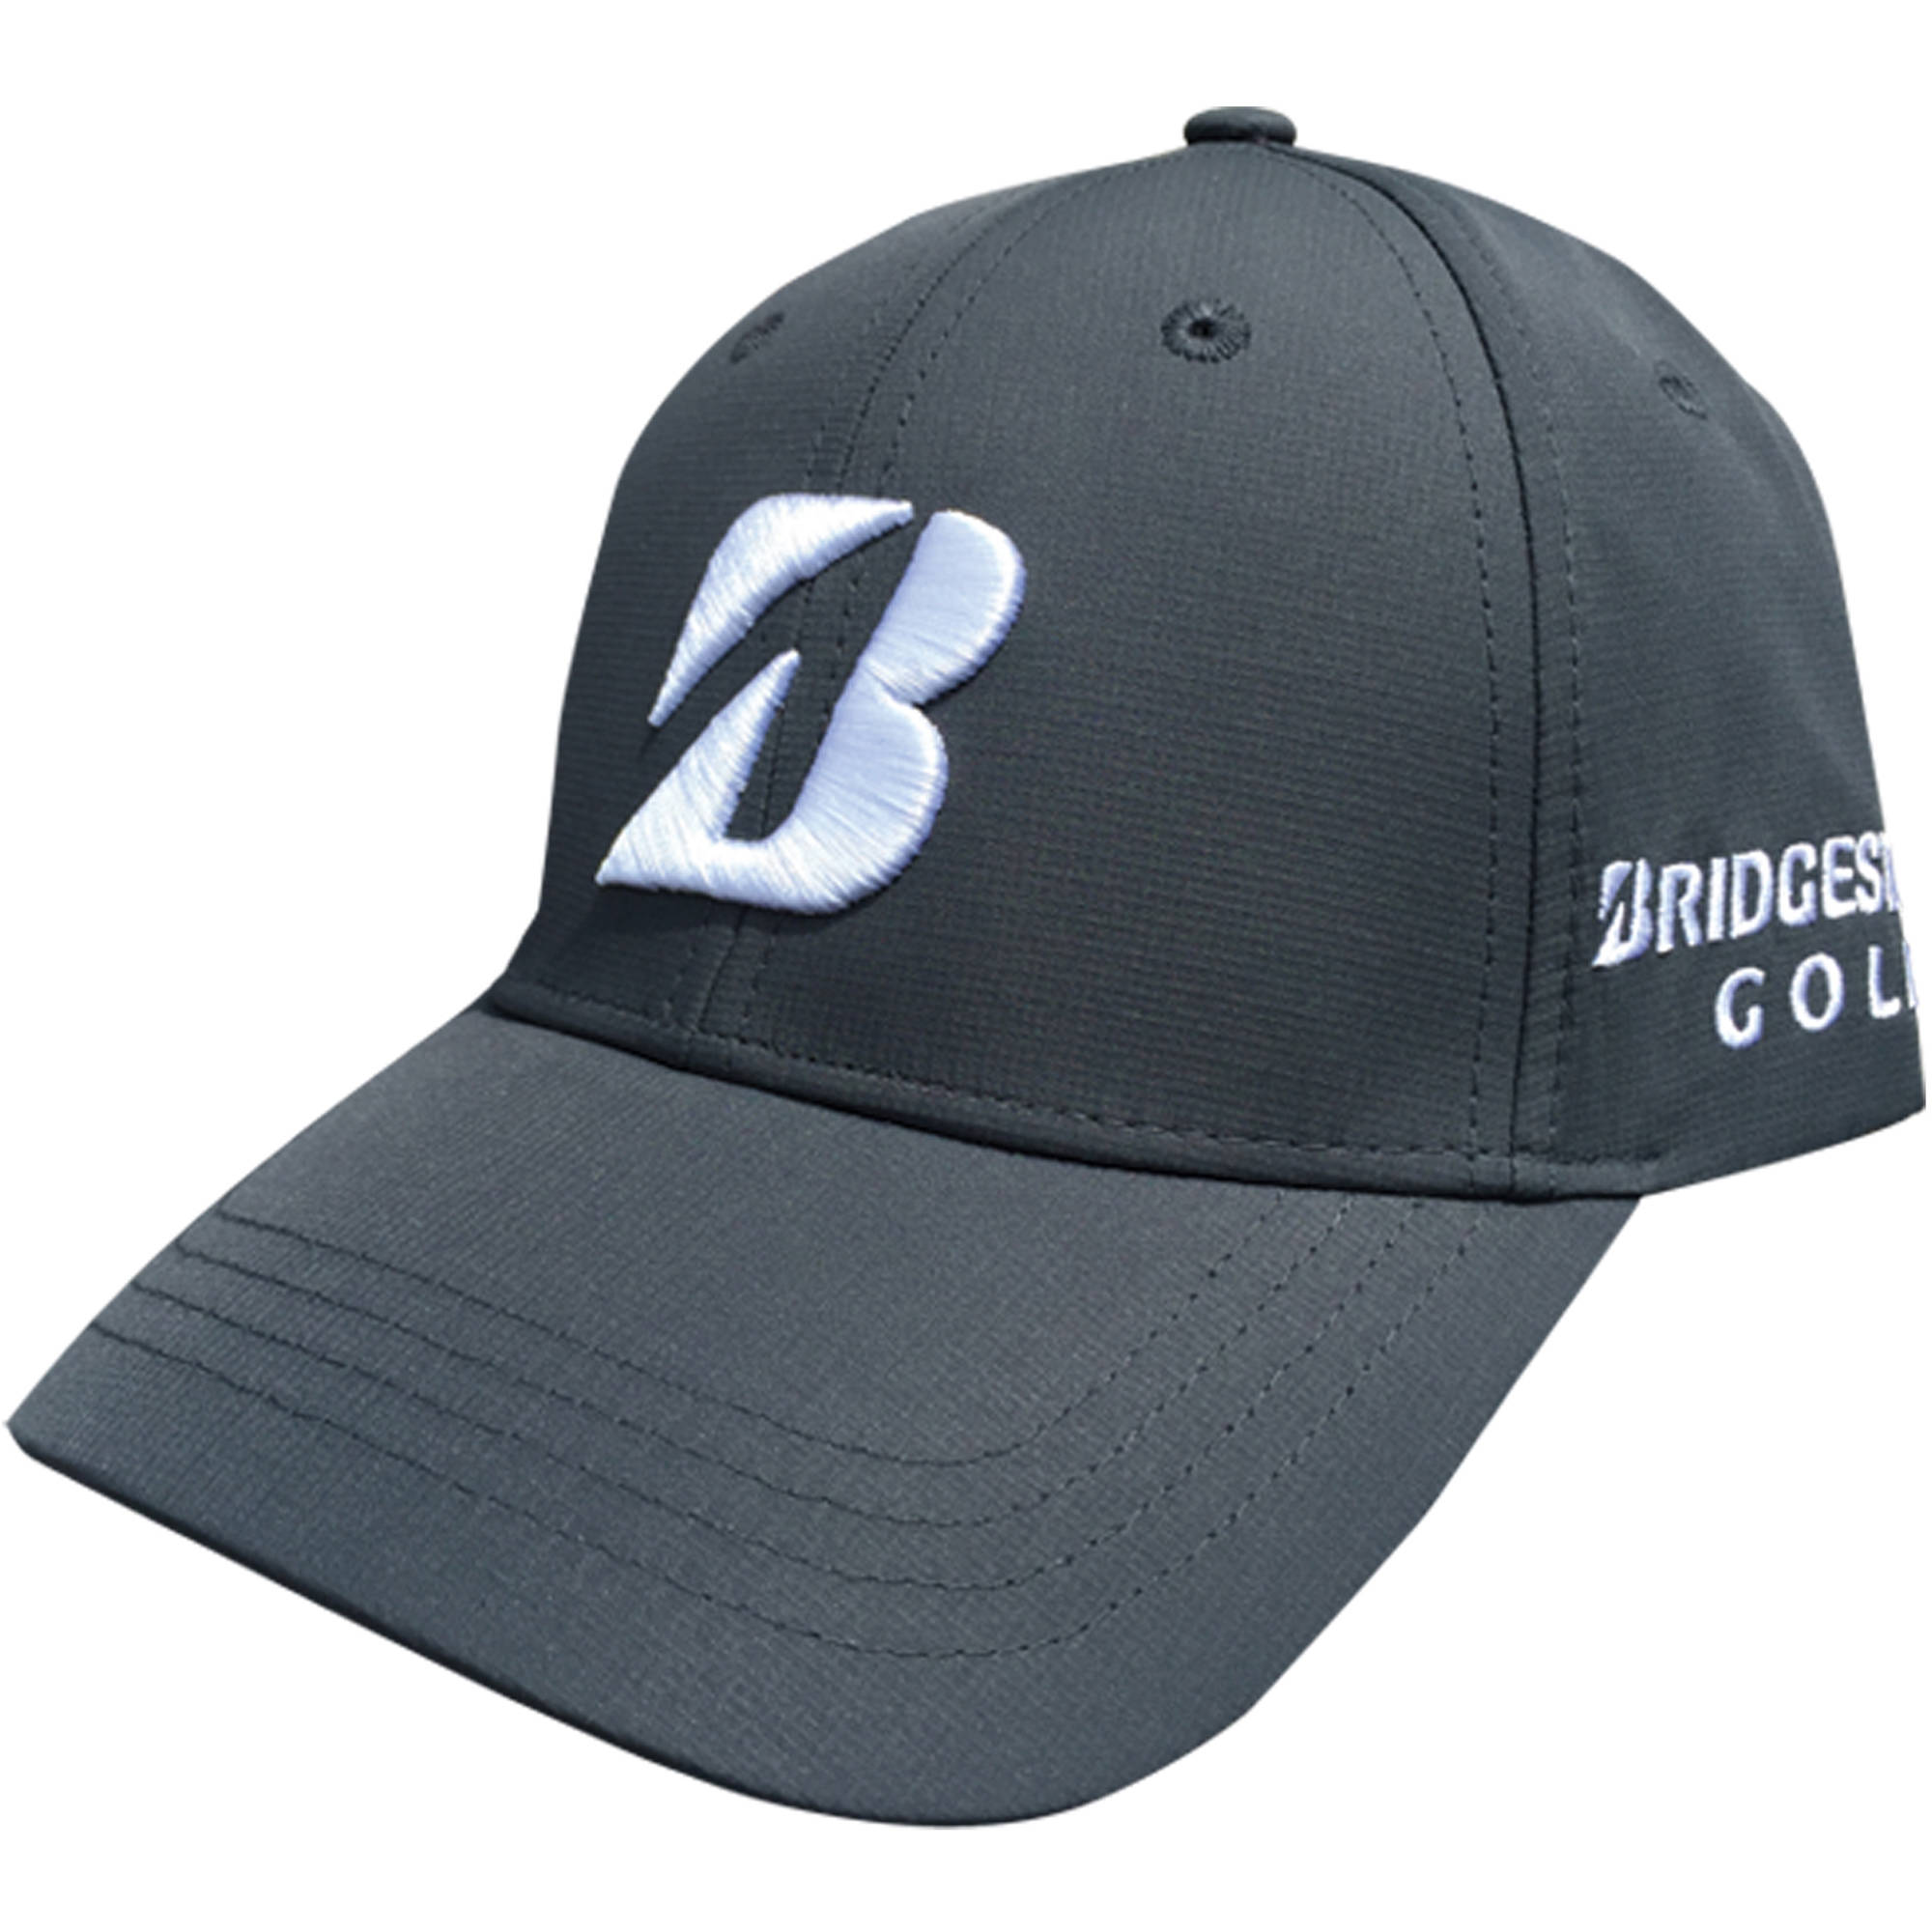 Bridgestone Golf Performance Cap Graphite